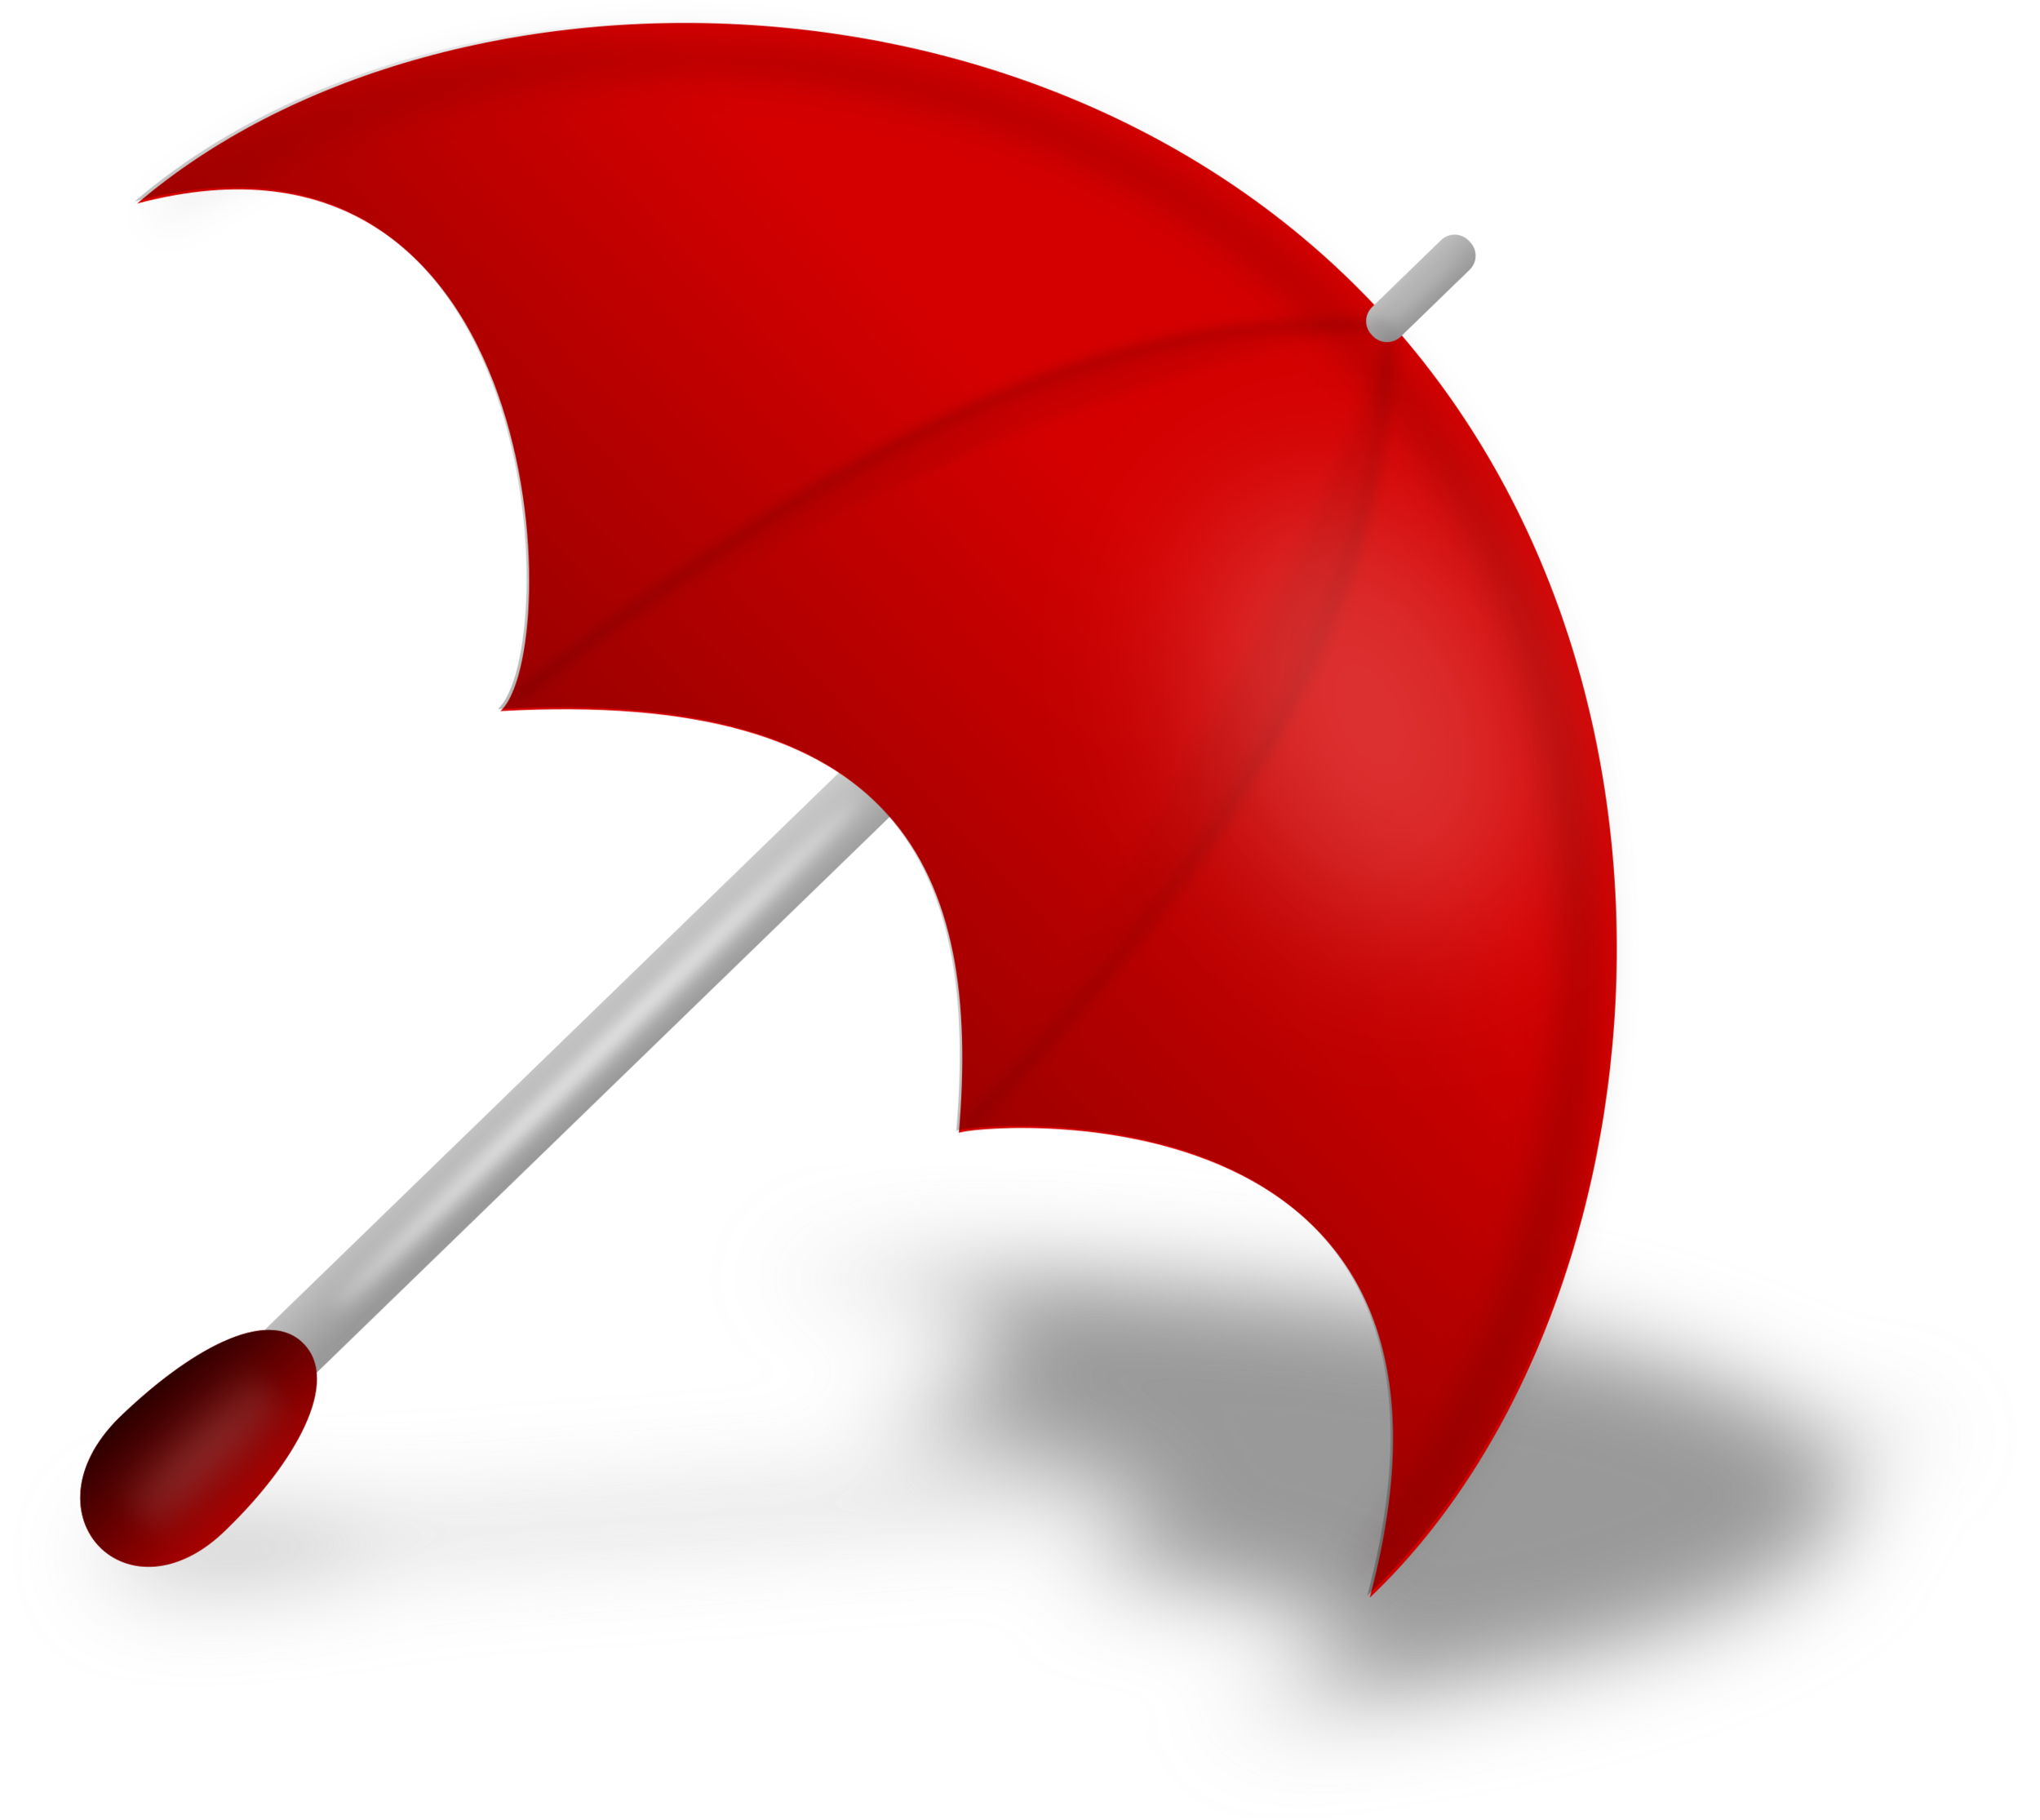 umbrella-png-30.png